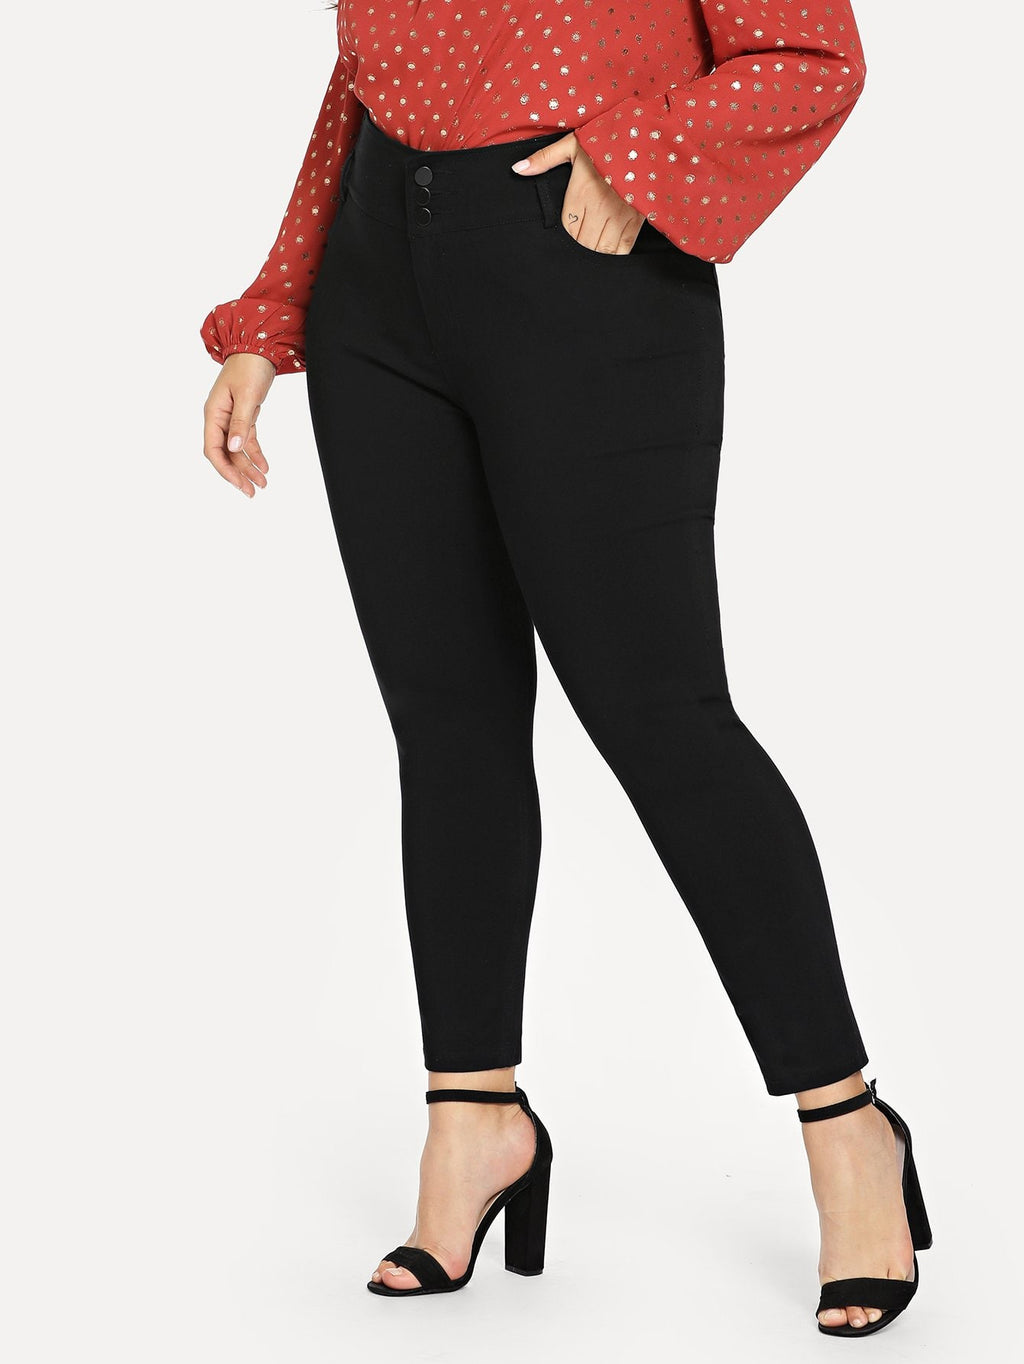 Plus Size Jeans - Button Front Solid Jeans